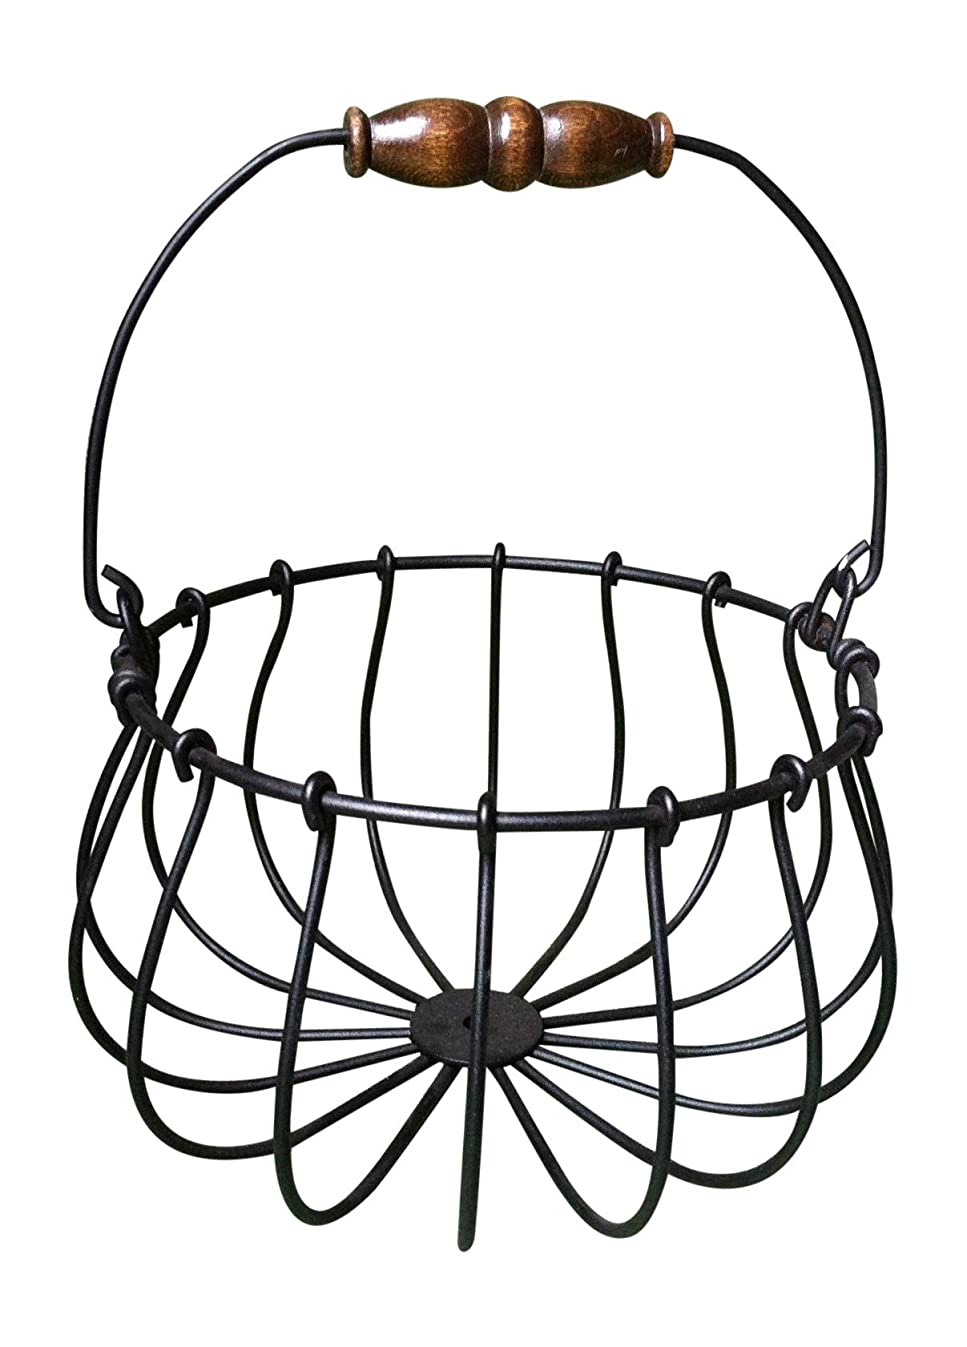 Wire Egg Basket, Black Wrought Iron, Wood Handle, Holds 12-20 Eggs, Made in USA